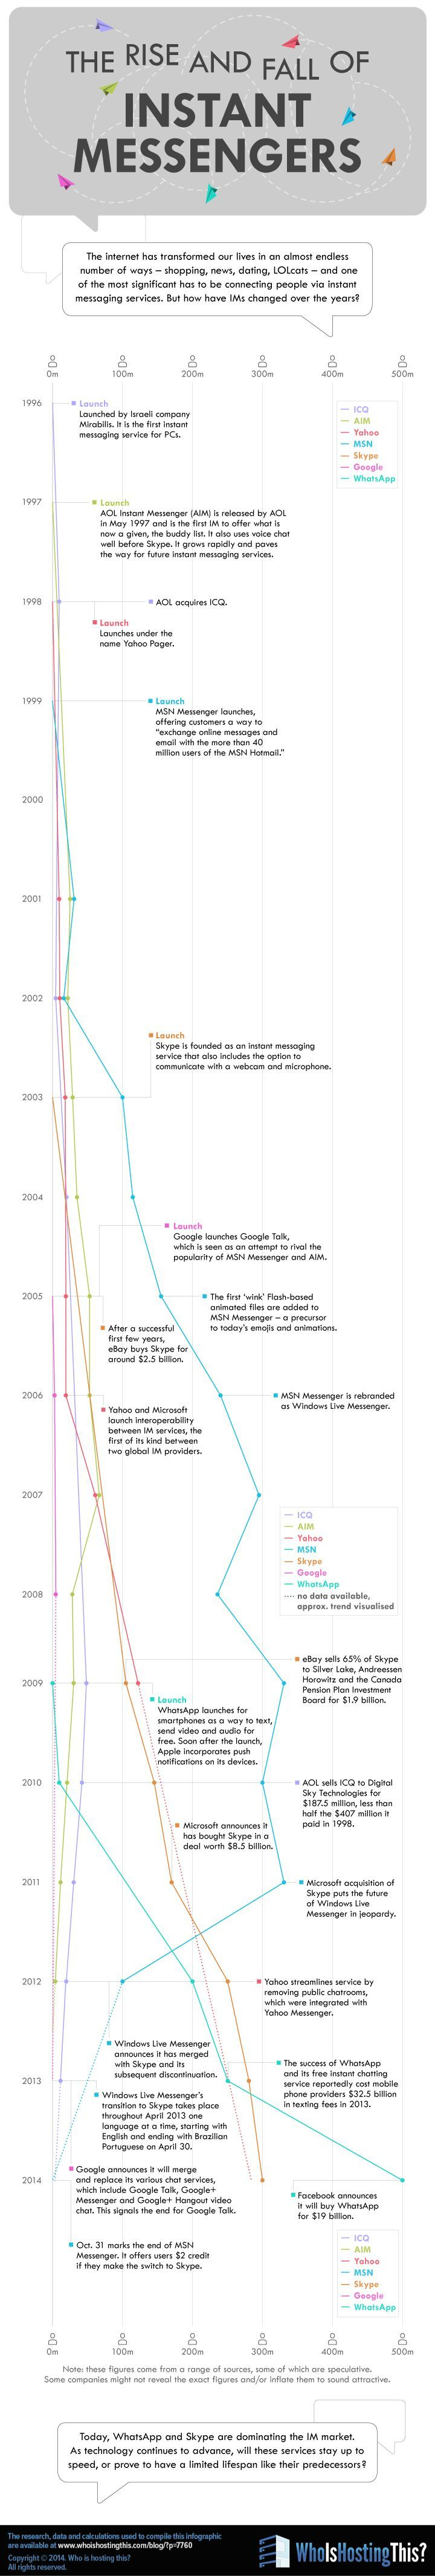 The Rise and Fall of Instant Messengers #Infographic #InstantMessenger #SocialMedia